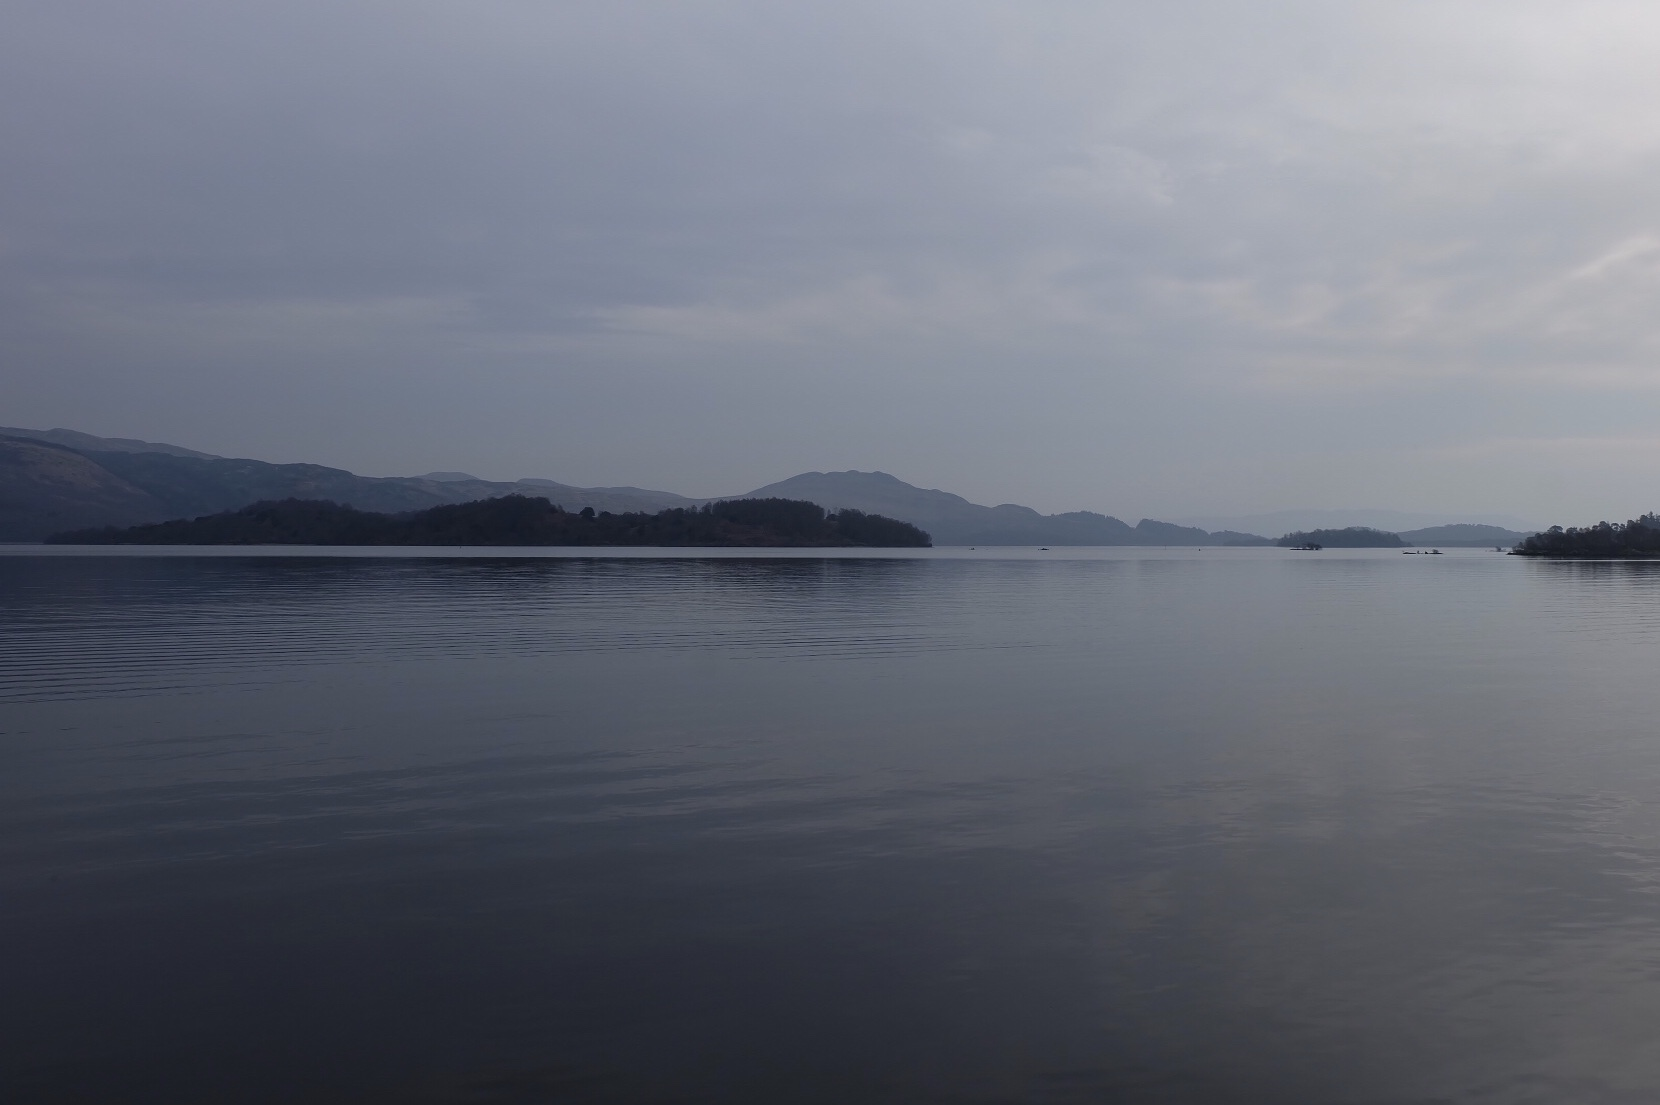 View across Loch Lomond from the shores of the village of Luss